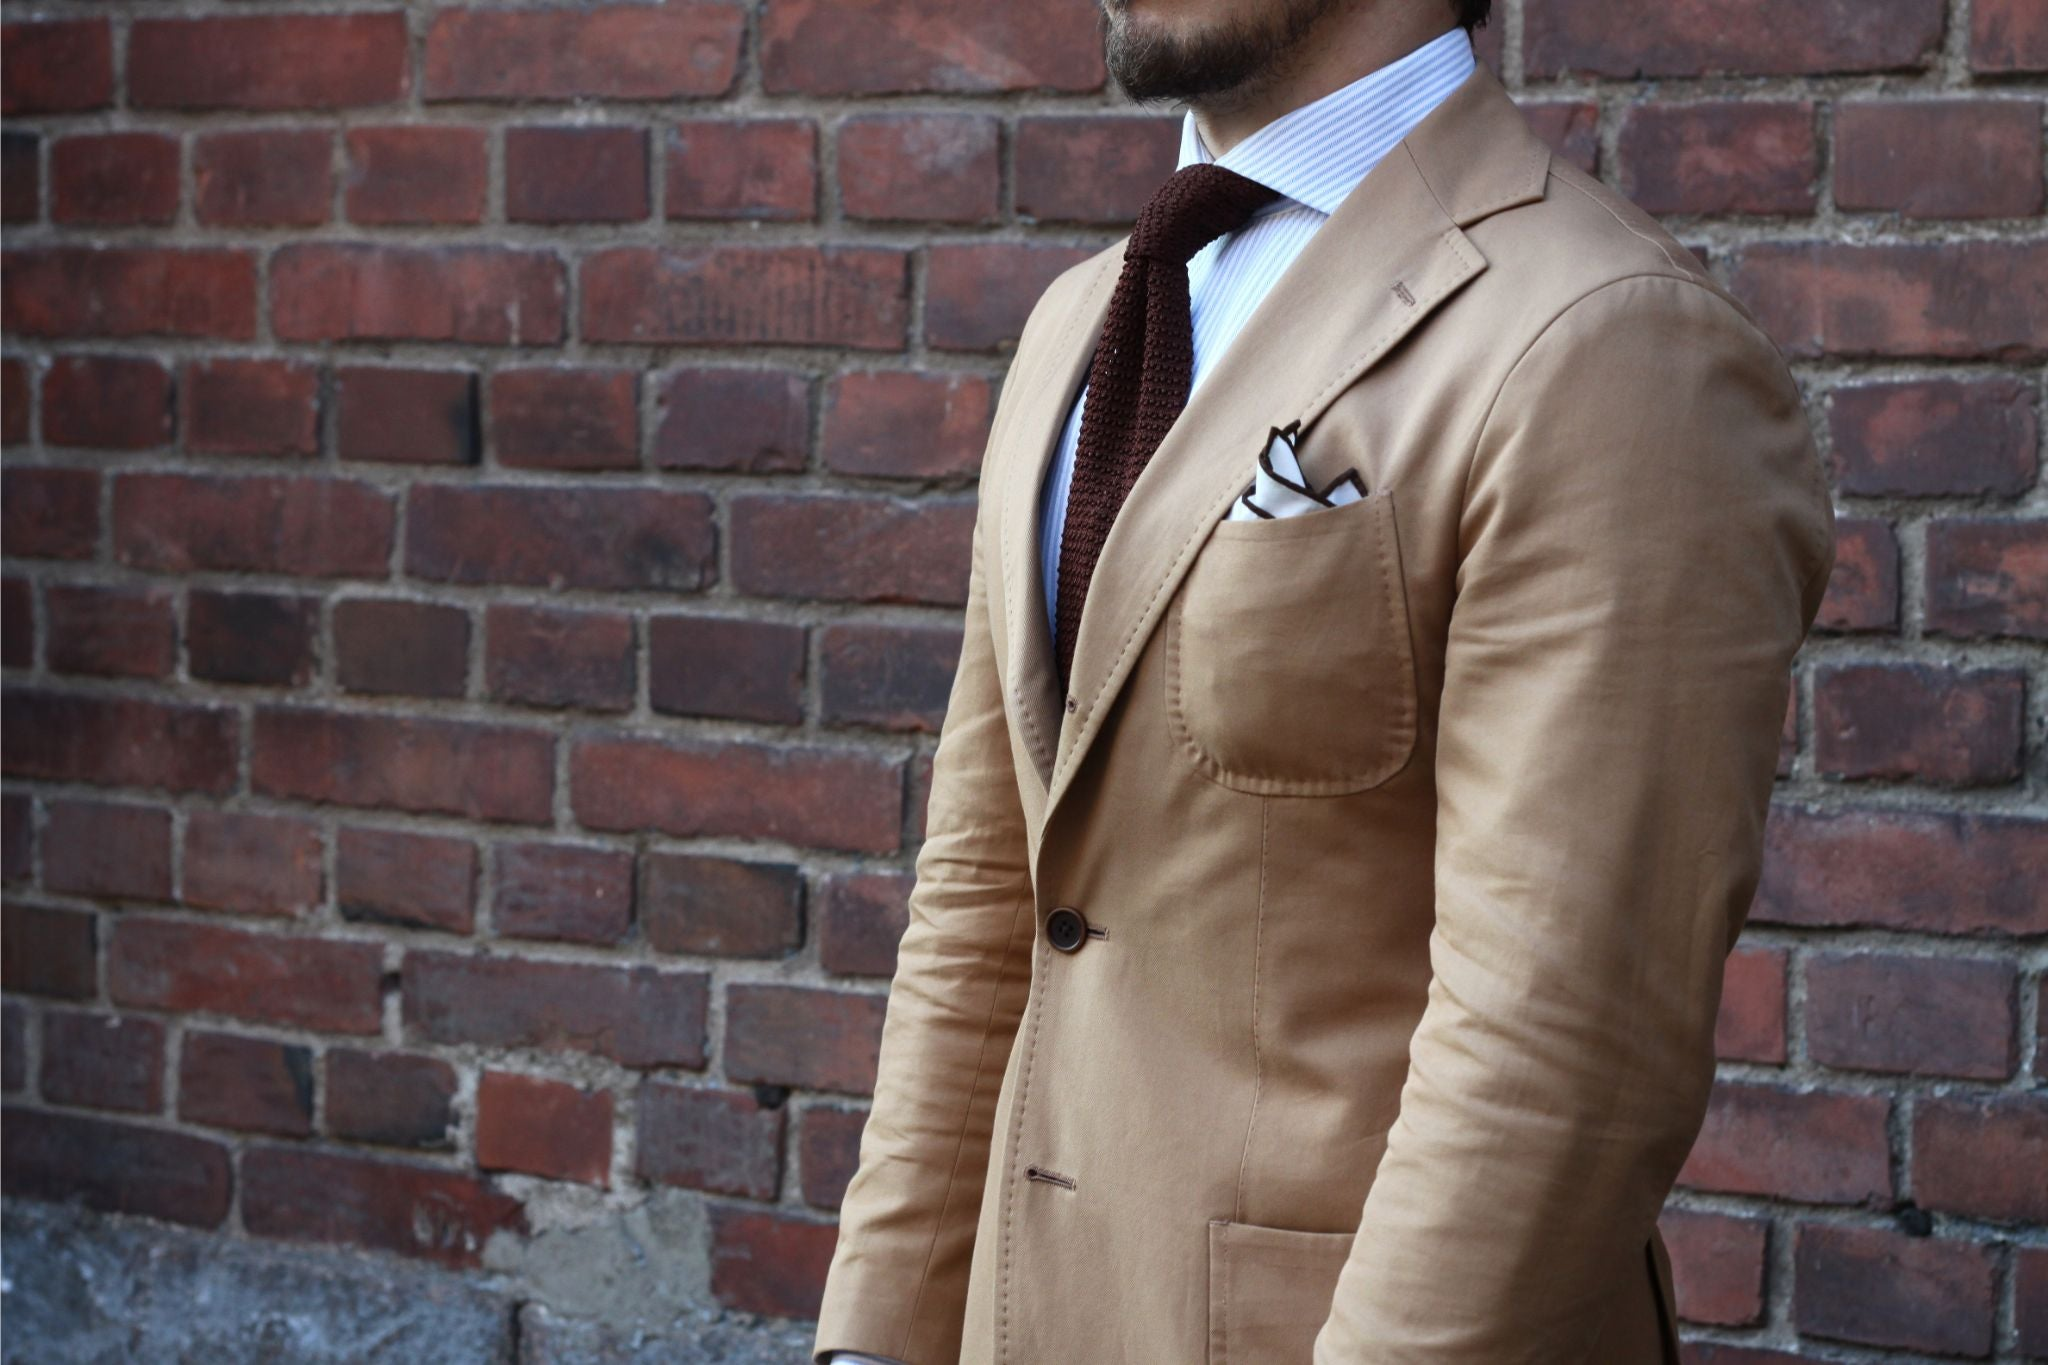 Soft shoulders and drape of the suit jacket